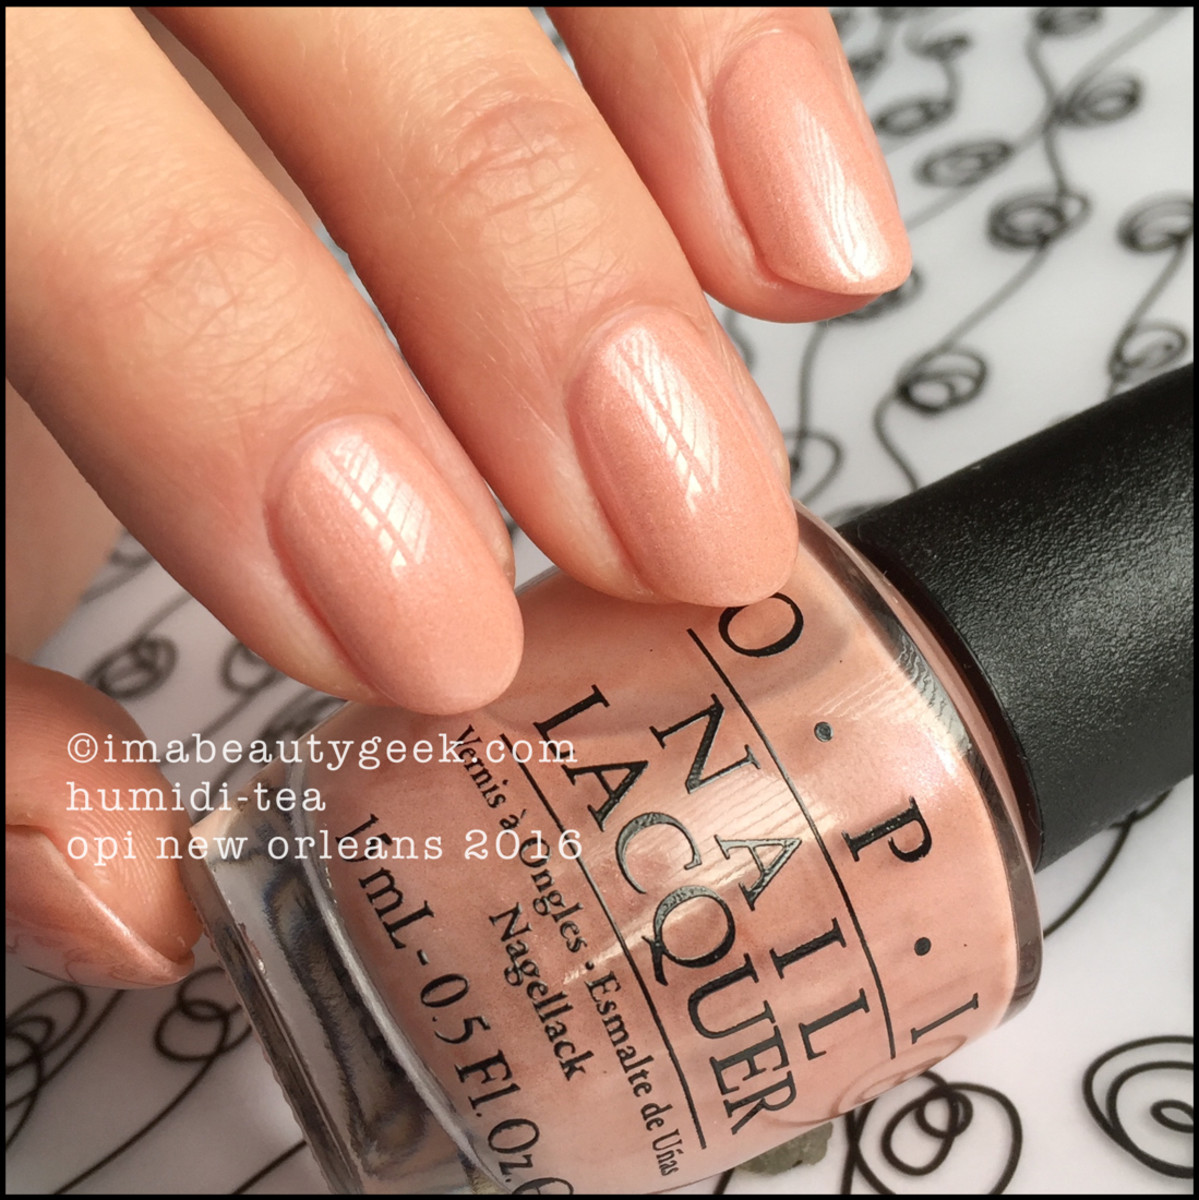 OPI Humidi-Tea_OPI New Orleans Collection Swatches Review 2016